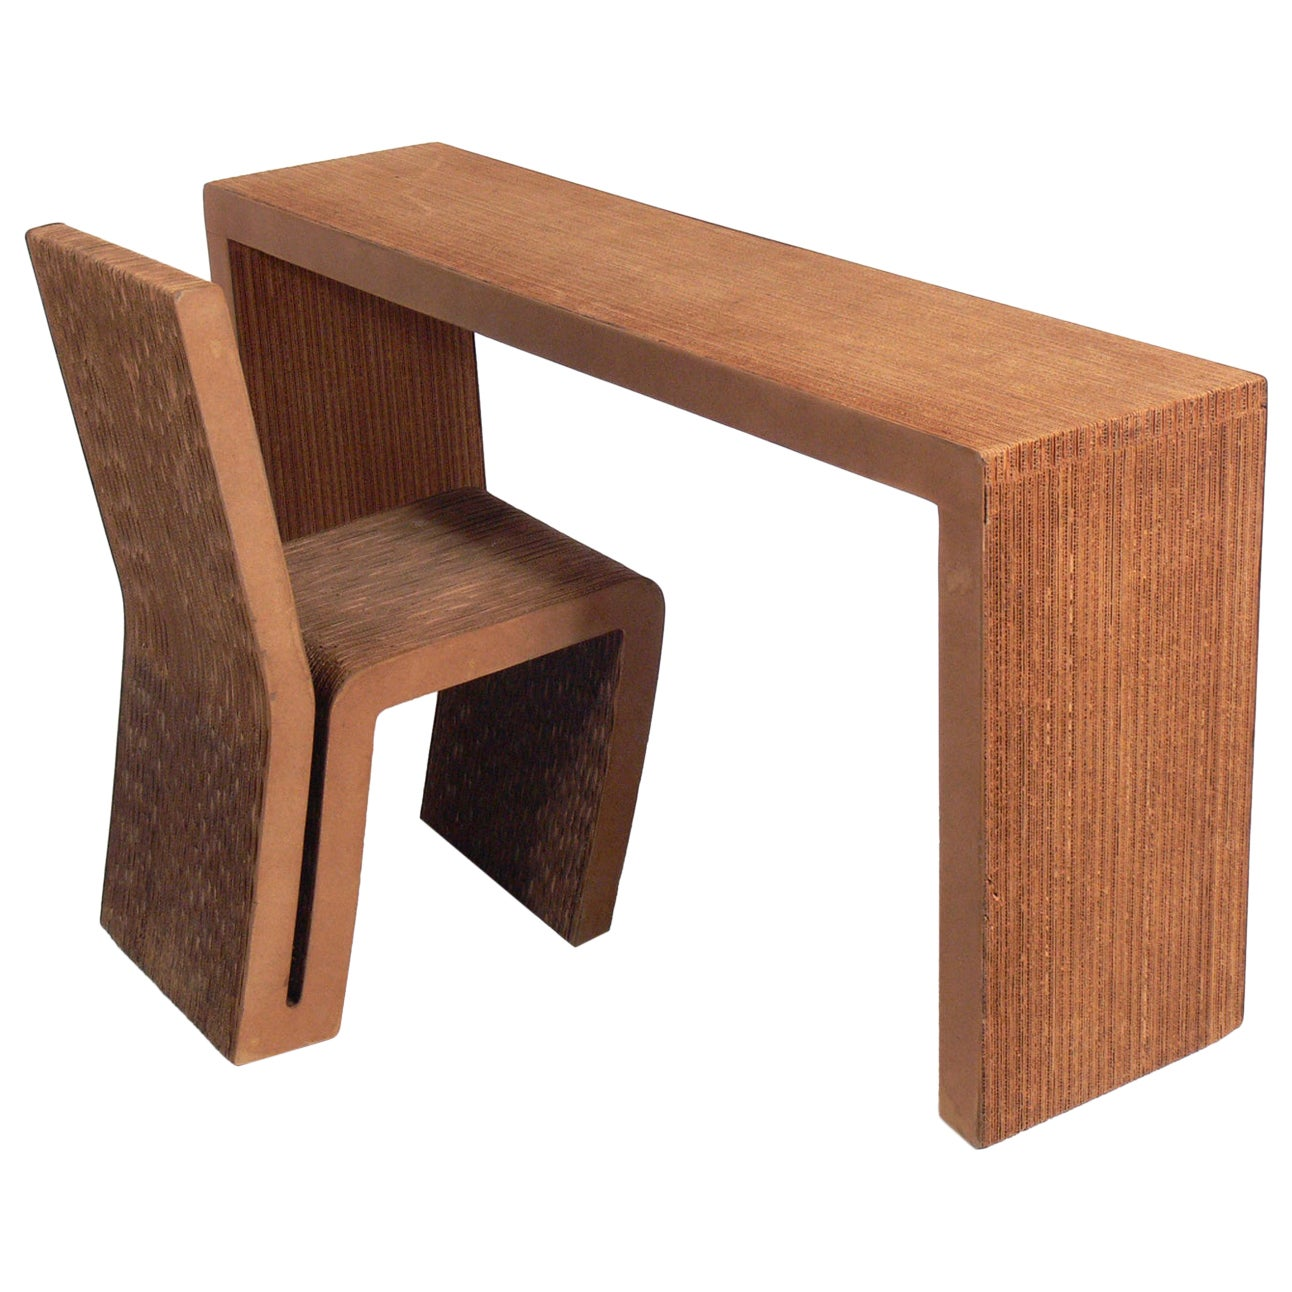 Frank Gehry Desk and Chair